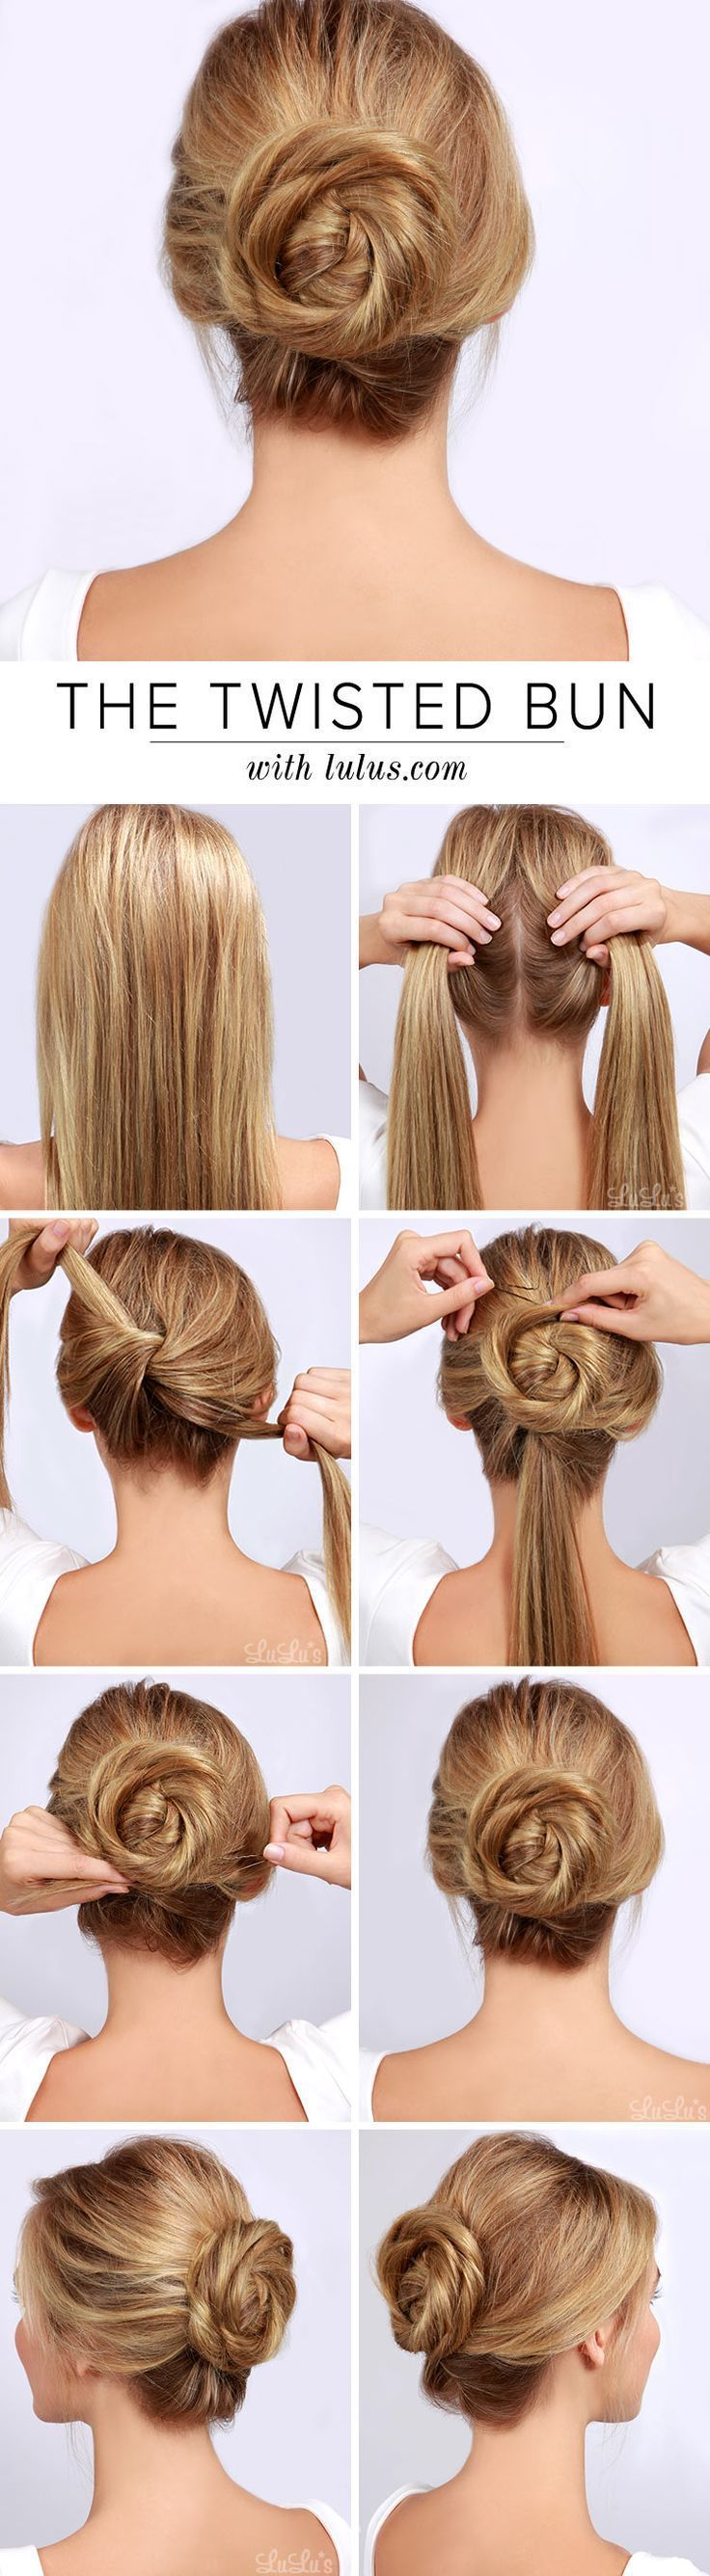 Most Beautiful Hairstyles All Women Will Love